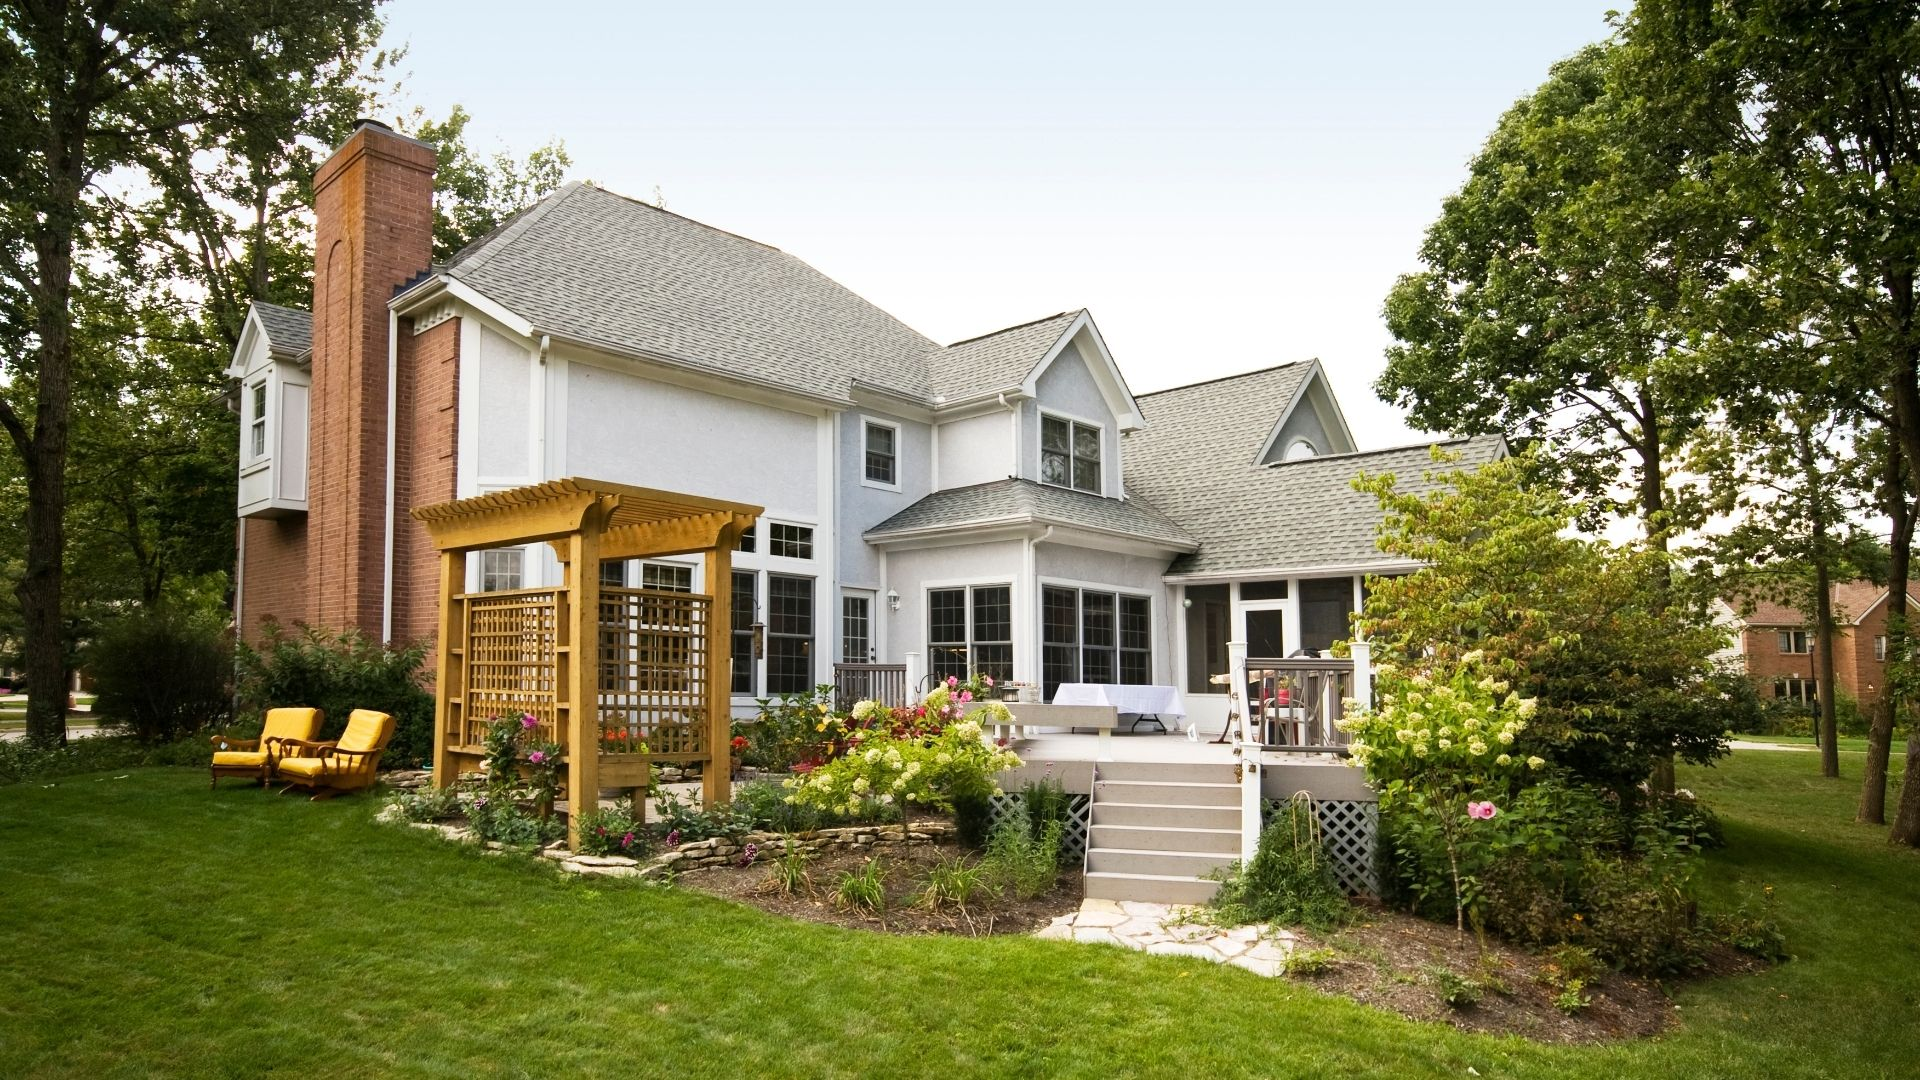 Exterior Upgrades to Add Value to Your Home